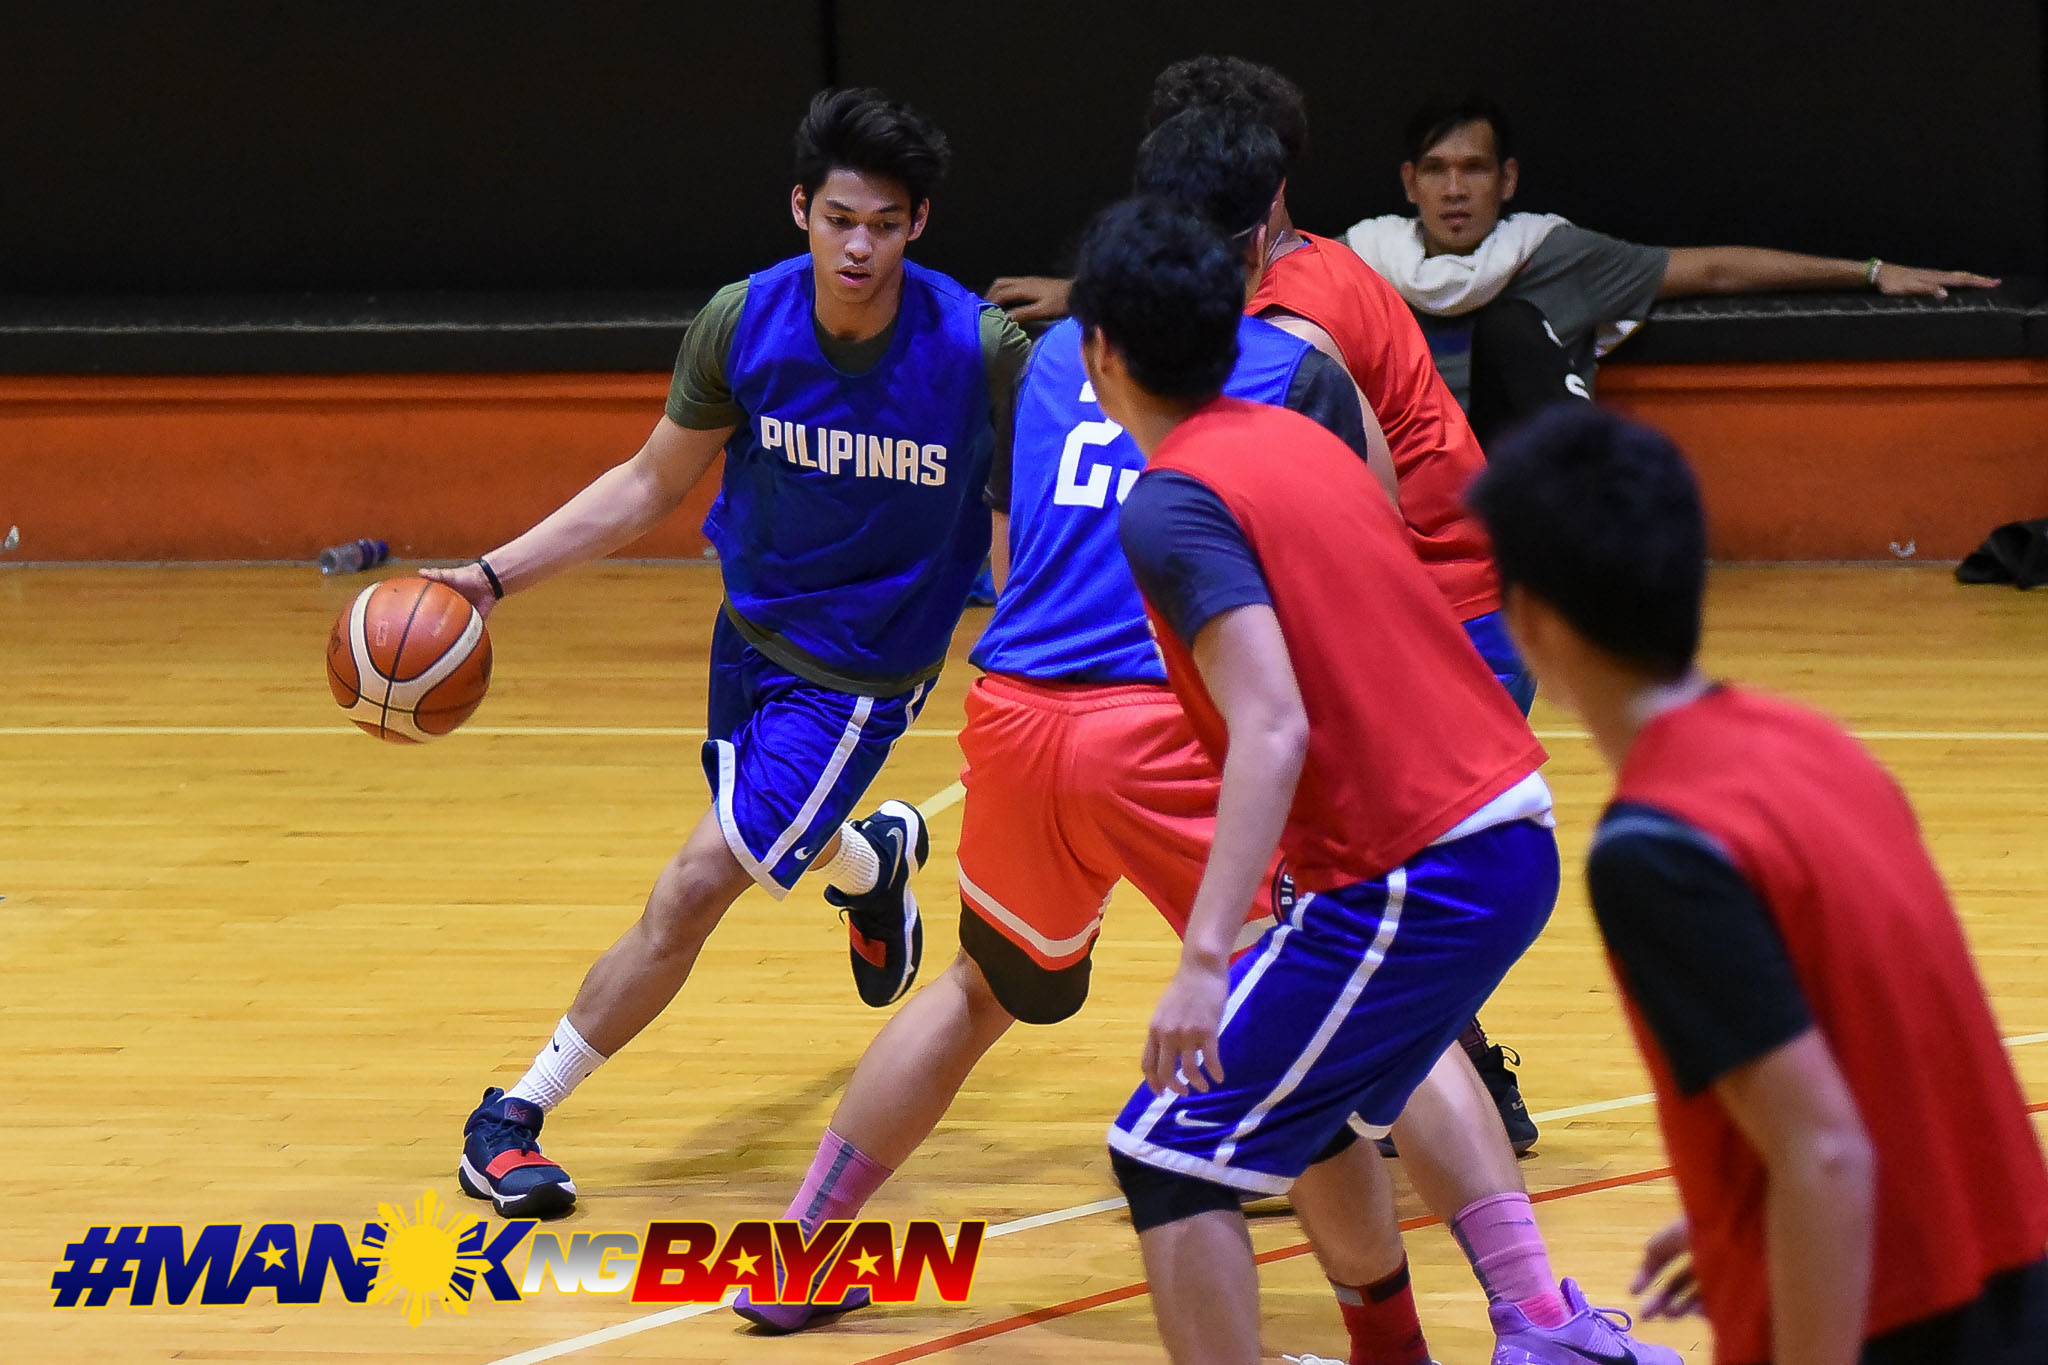 Tiebreaker Times Ricci Rivero elated to train with Kiefer Ravena, Gilas Basketball Gilas Pilipinas News  Ricci Rivero 2023 FIBA World Cup